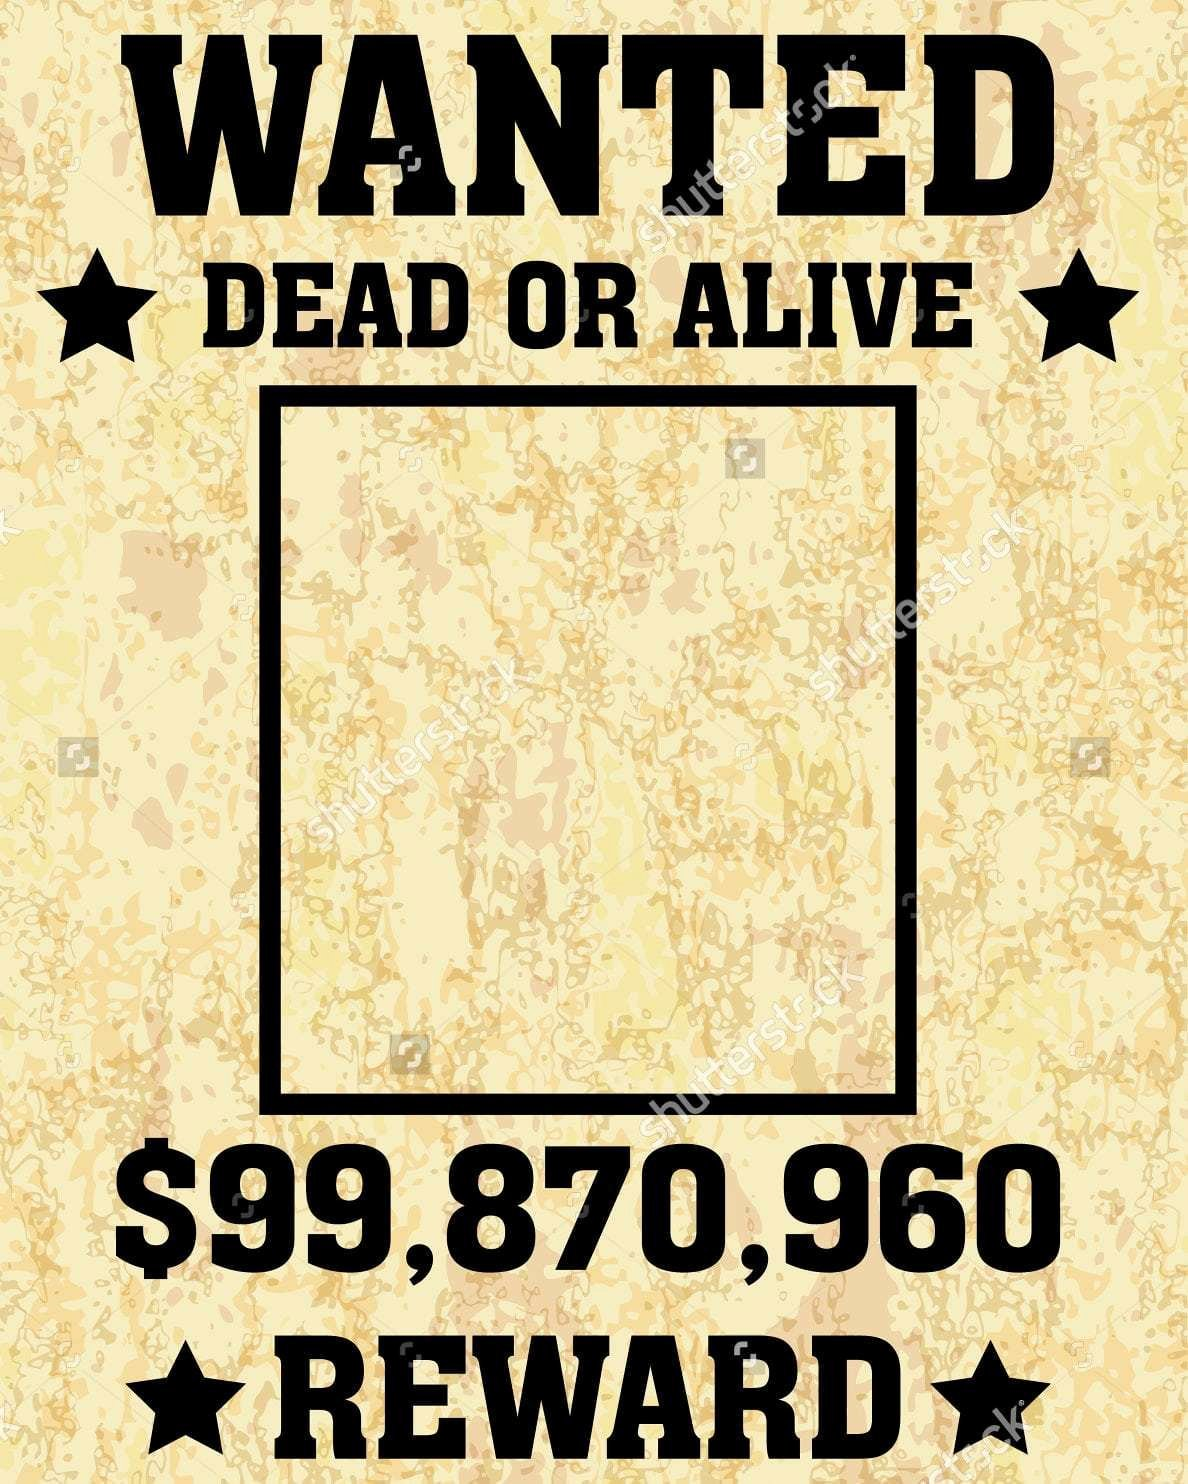 Wanted Poster Template for Word Awesome 6 Wanted Poster Templates Word Excel Templates